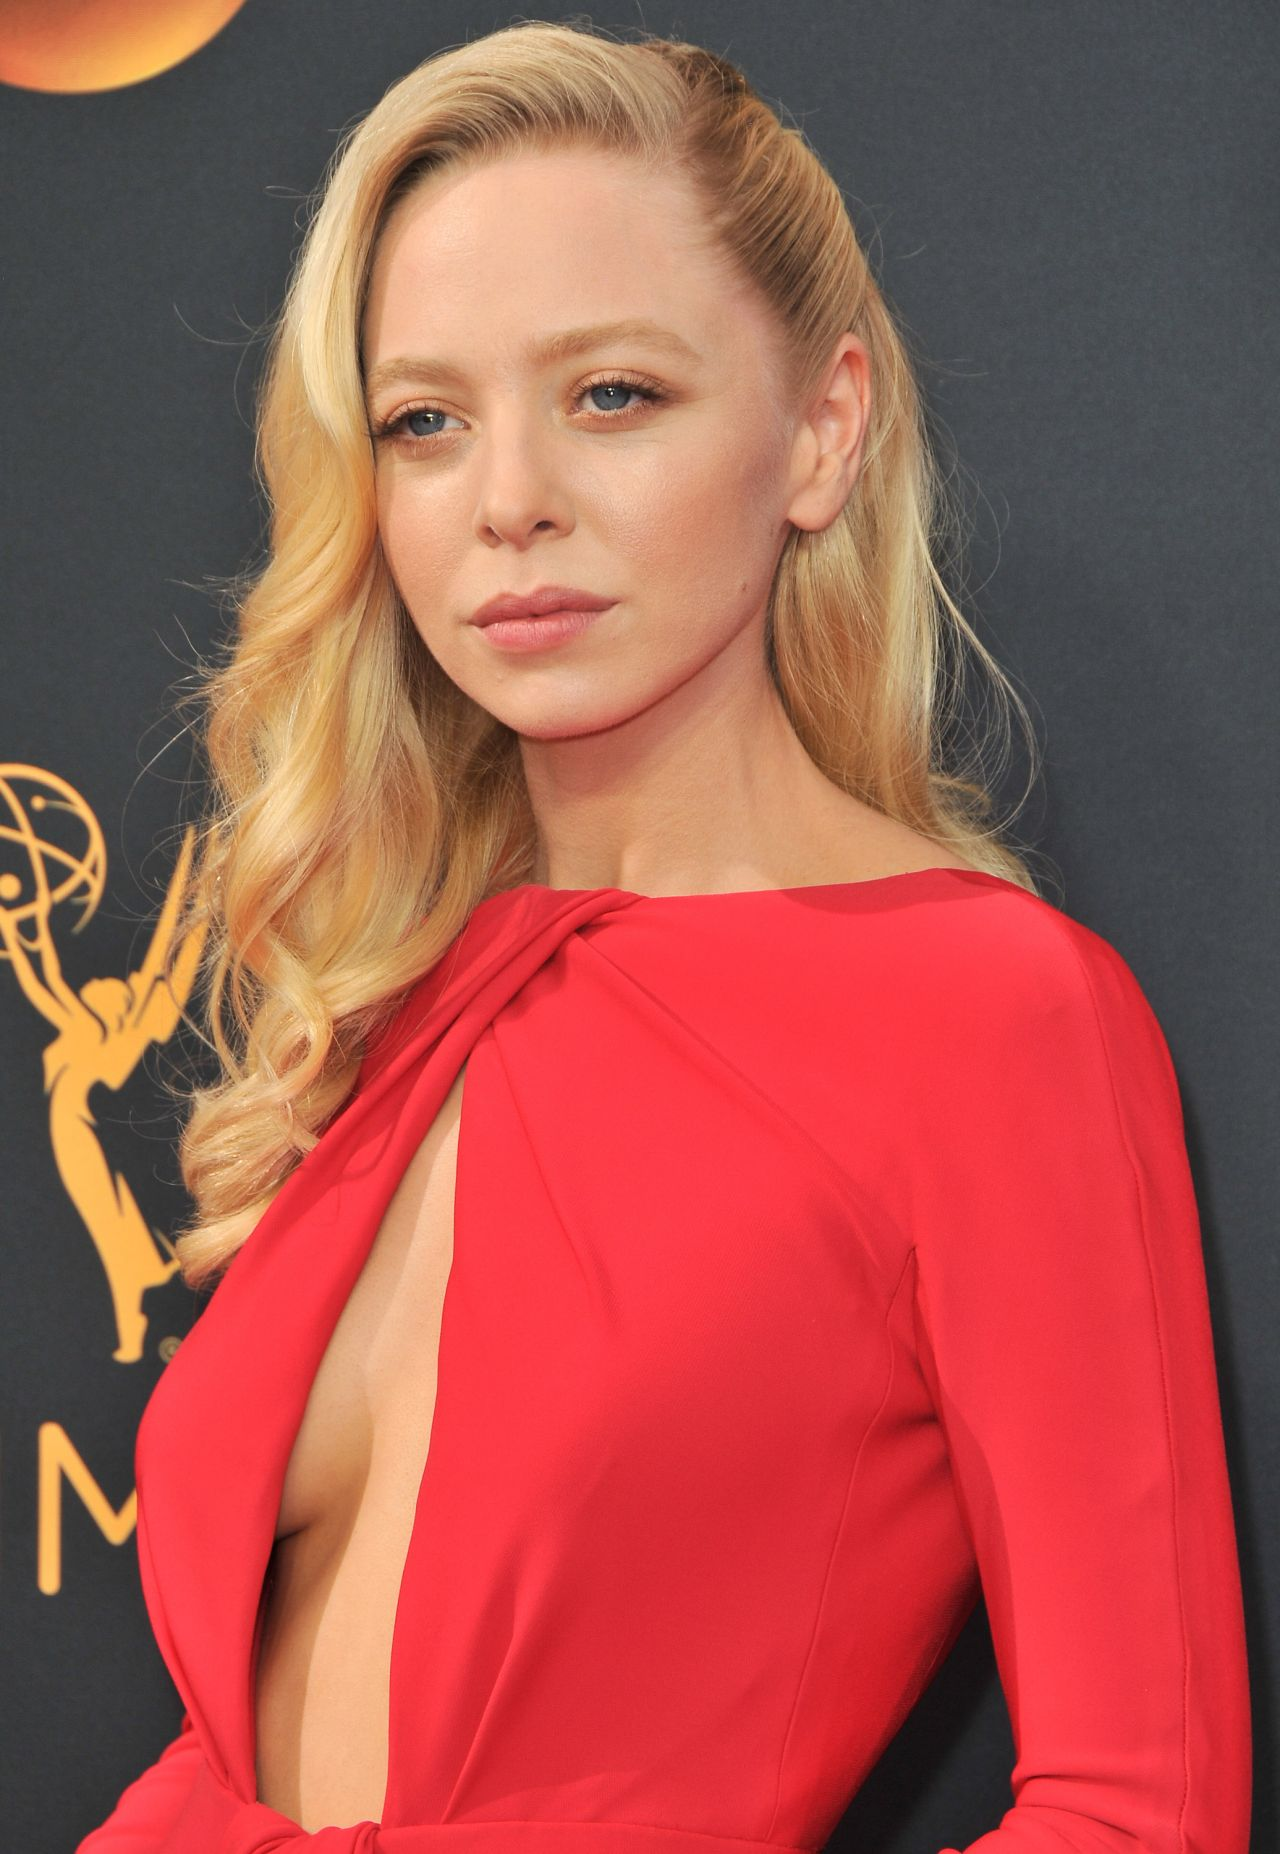 Pictures Portia Doubleday nude (18 photo), Ass, Hot, Boobs, butt 2019